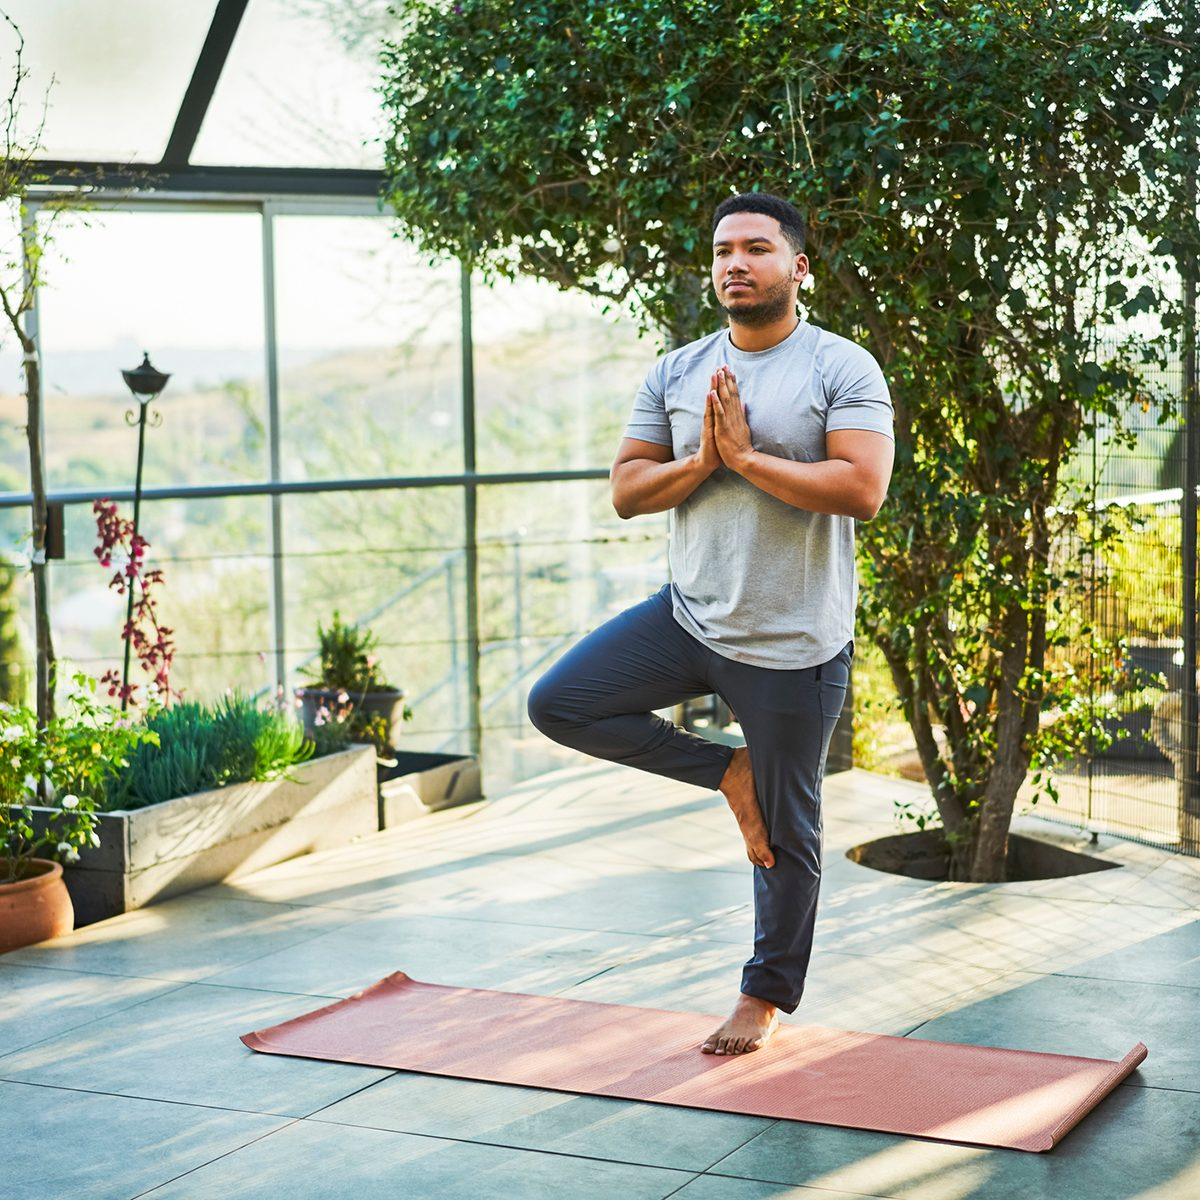 Full length of young man practicing tree pose. Male is exercising on porch. He is in sports clothing.